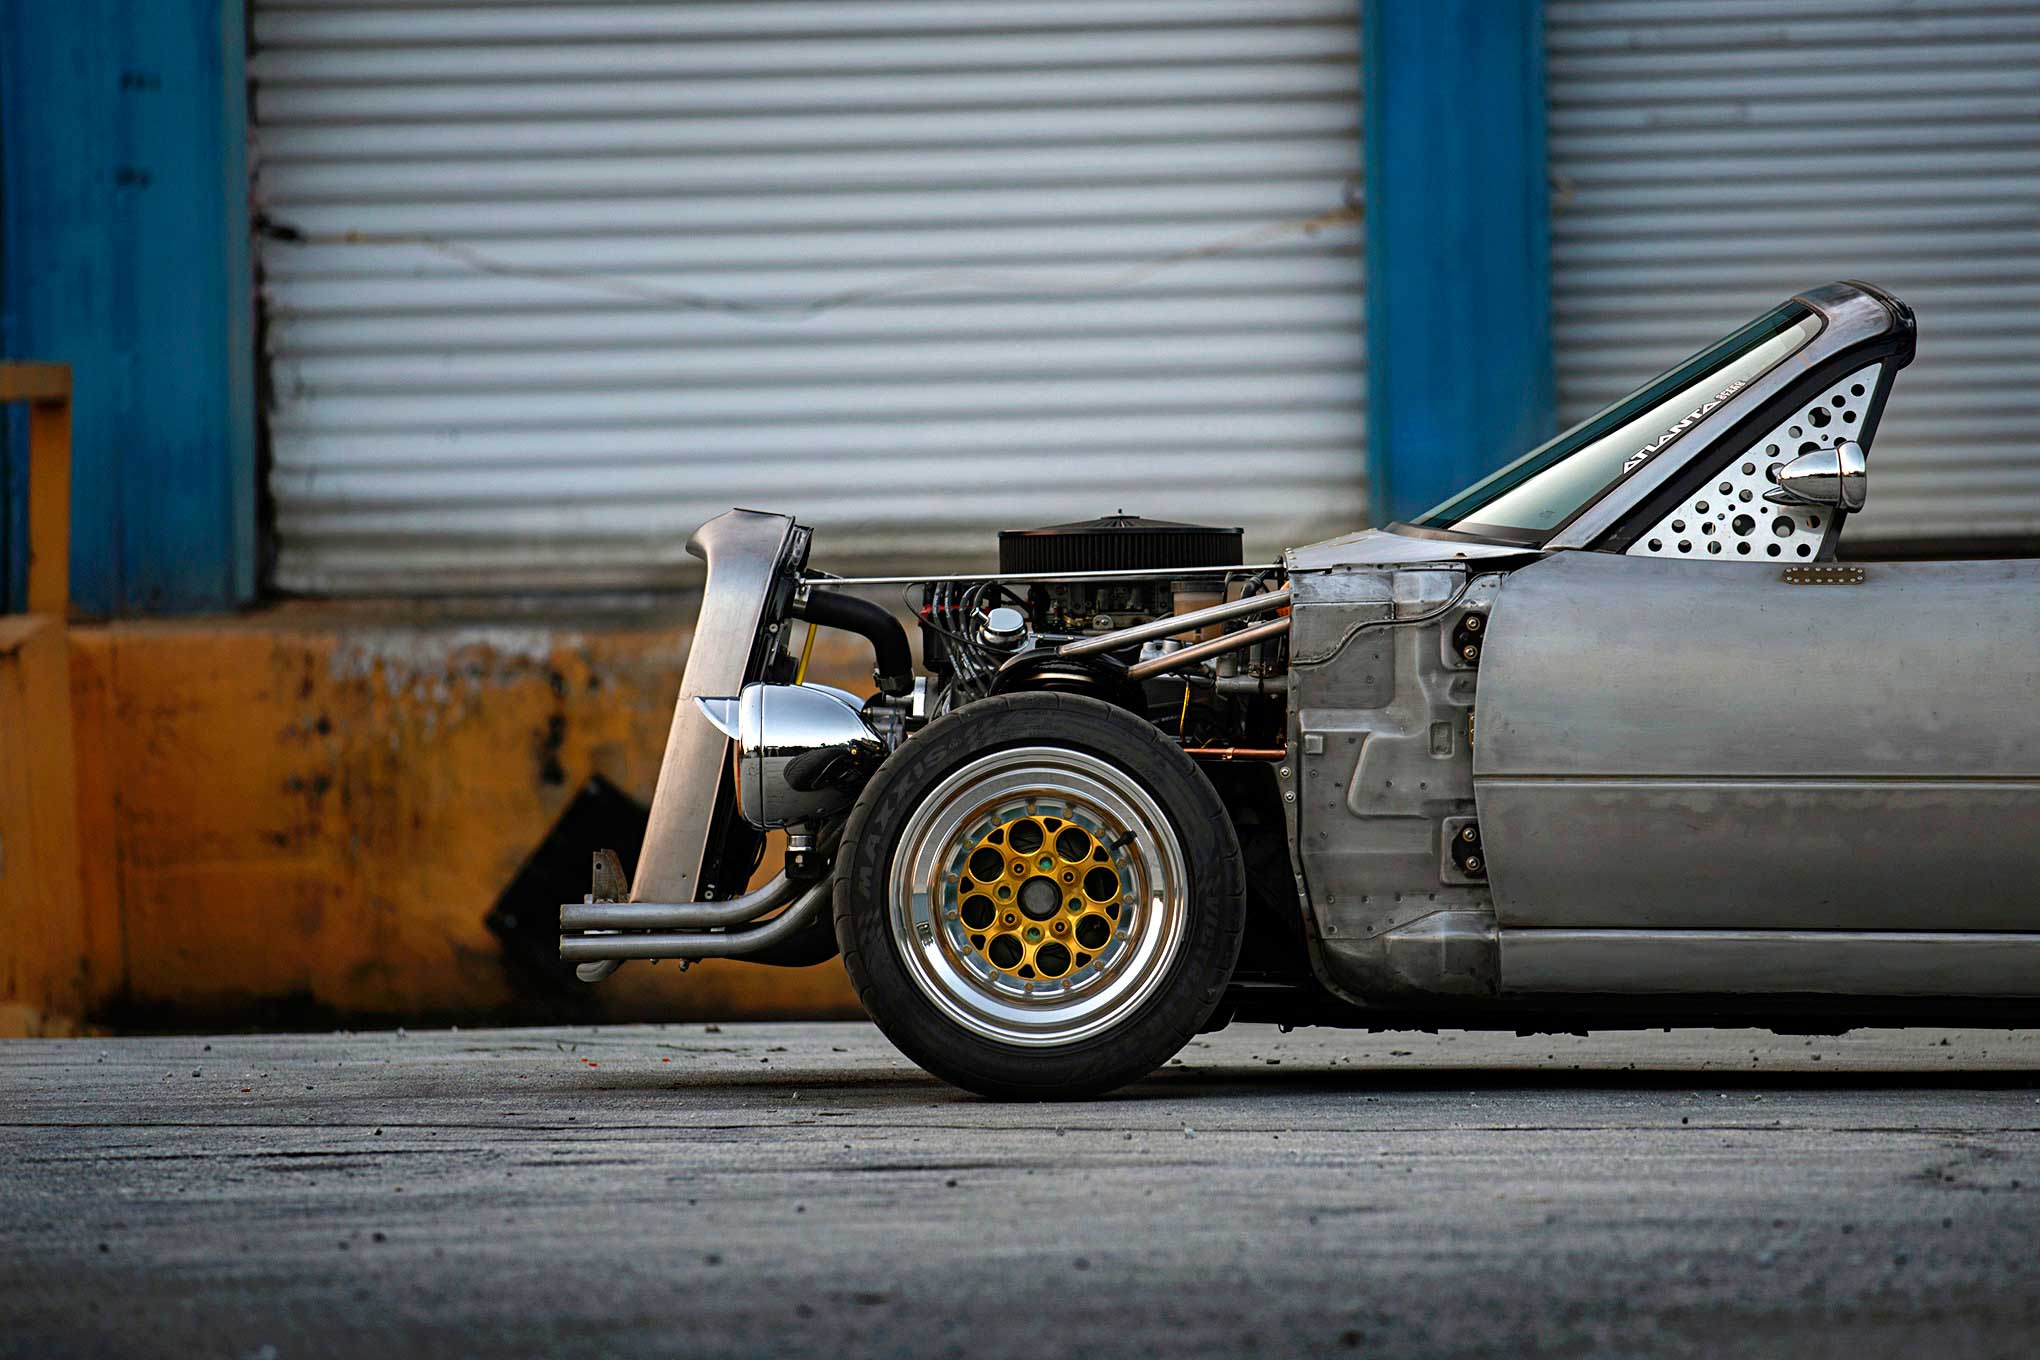 Mazda Miata Hot Rod V8 - What the Hell ?! 9